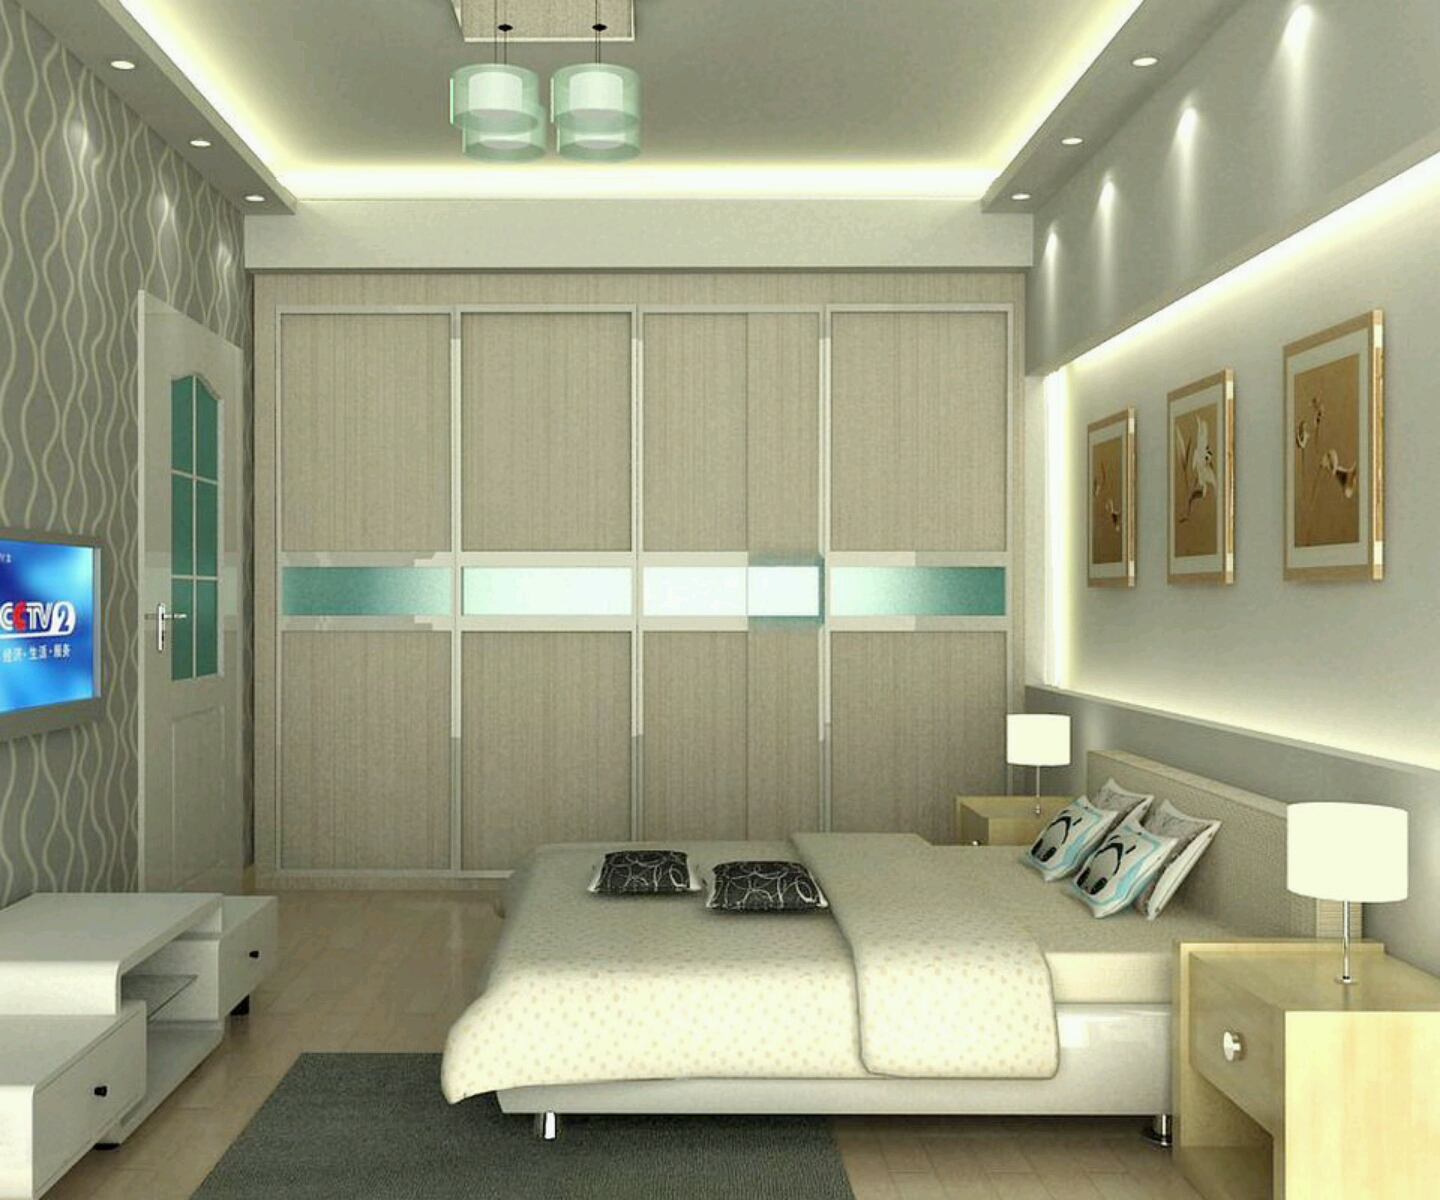 New home designs latest modern homes bedrooms designs best bedrooms designs ideas - Latest design of bedroom ...